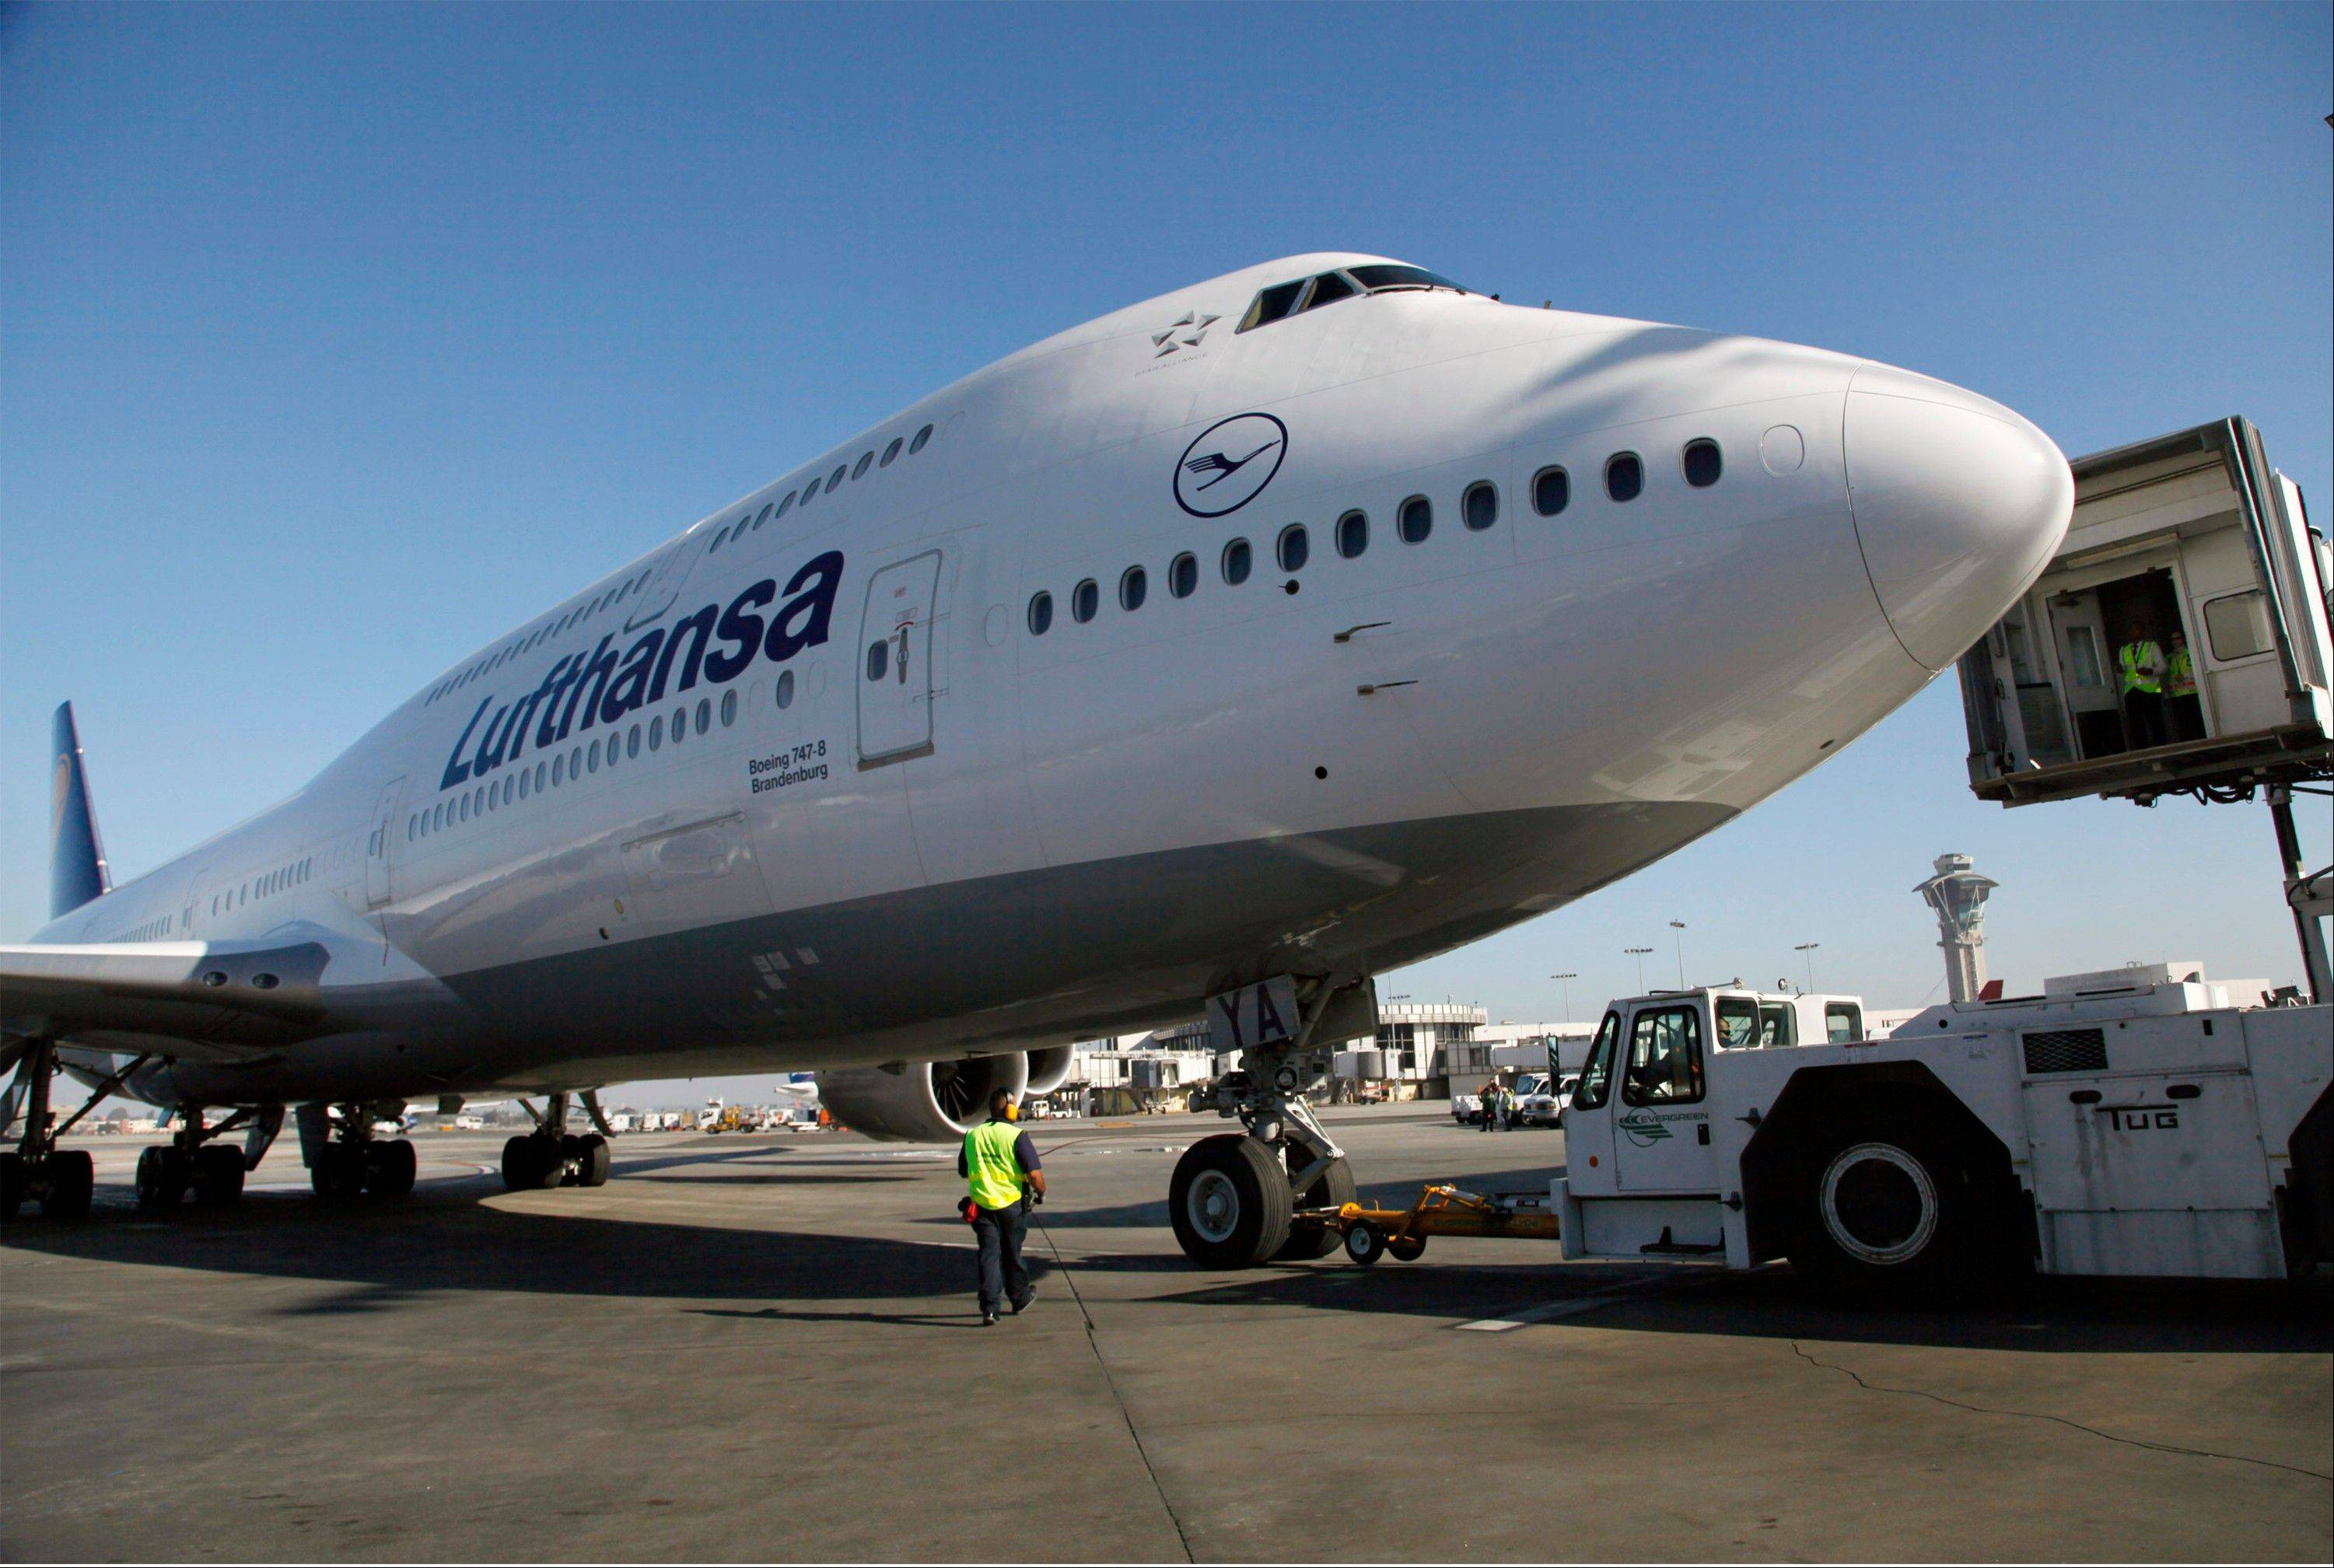 Lufthansa's Boeing 747-8 Brandenburg aircraft arrives at Los Angeles International Airport, after its inaugural passenger flight from Frankfurt, Germany to Los Angeles.